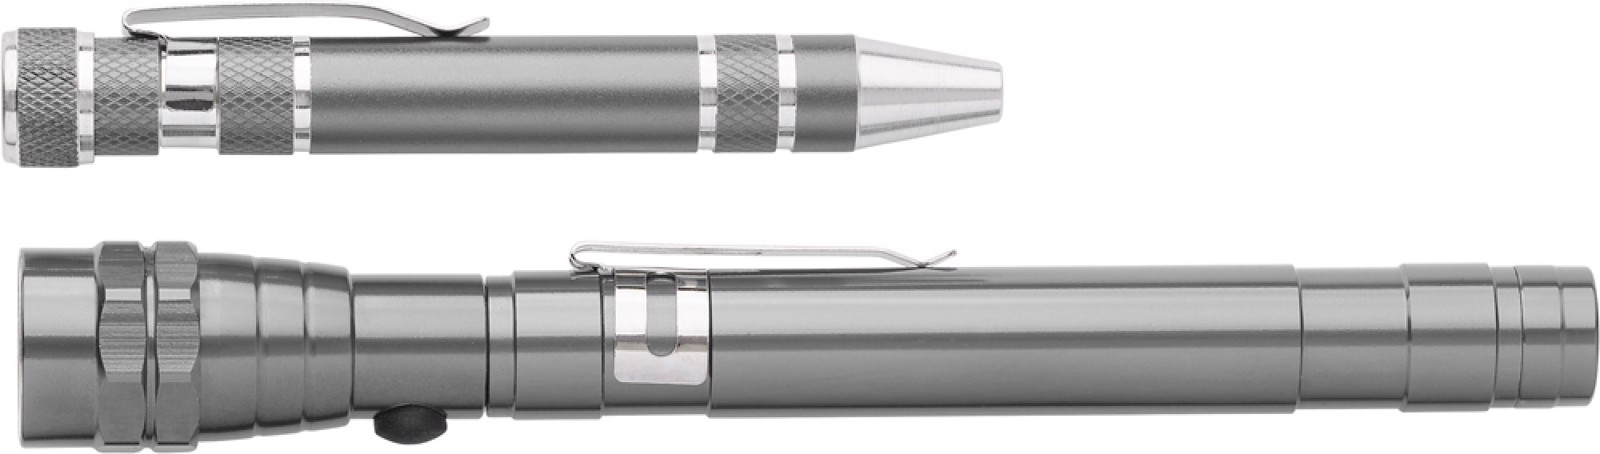 Aluminium 2-in-1 torch - Grey